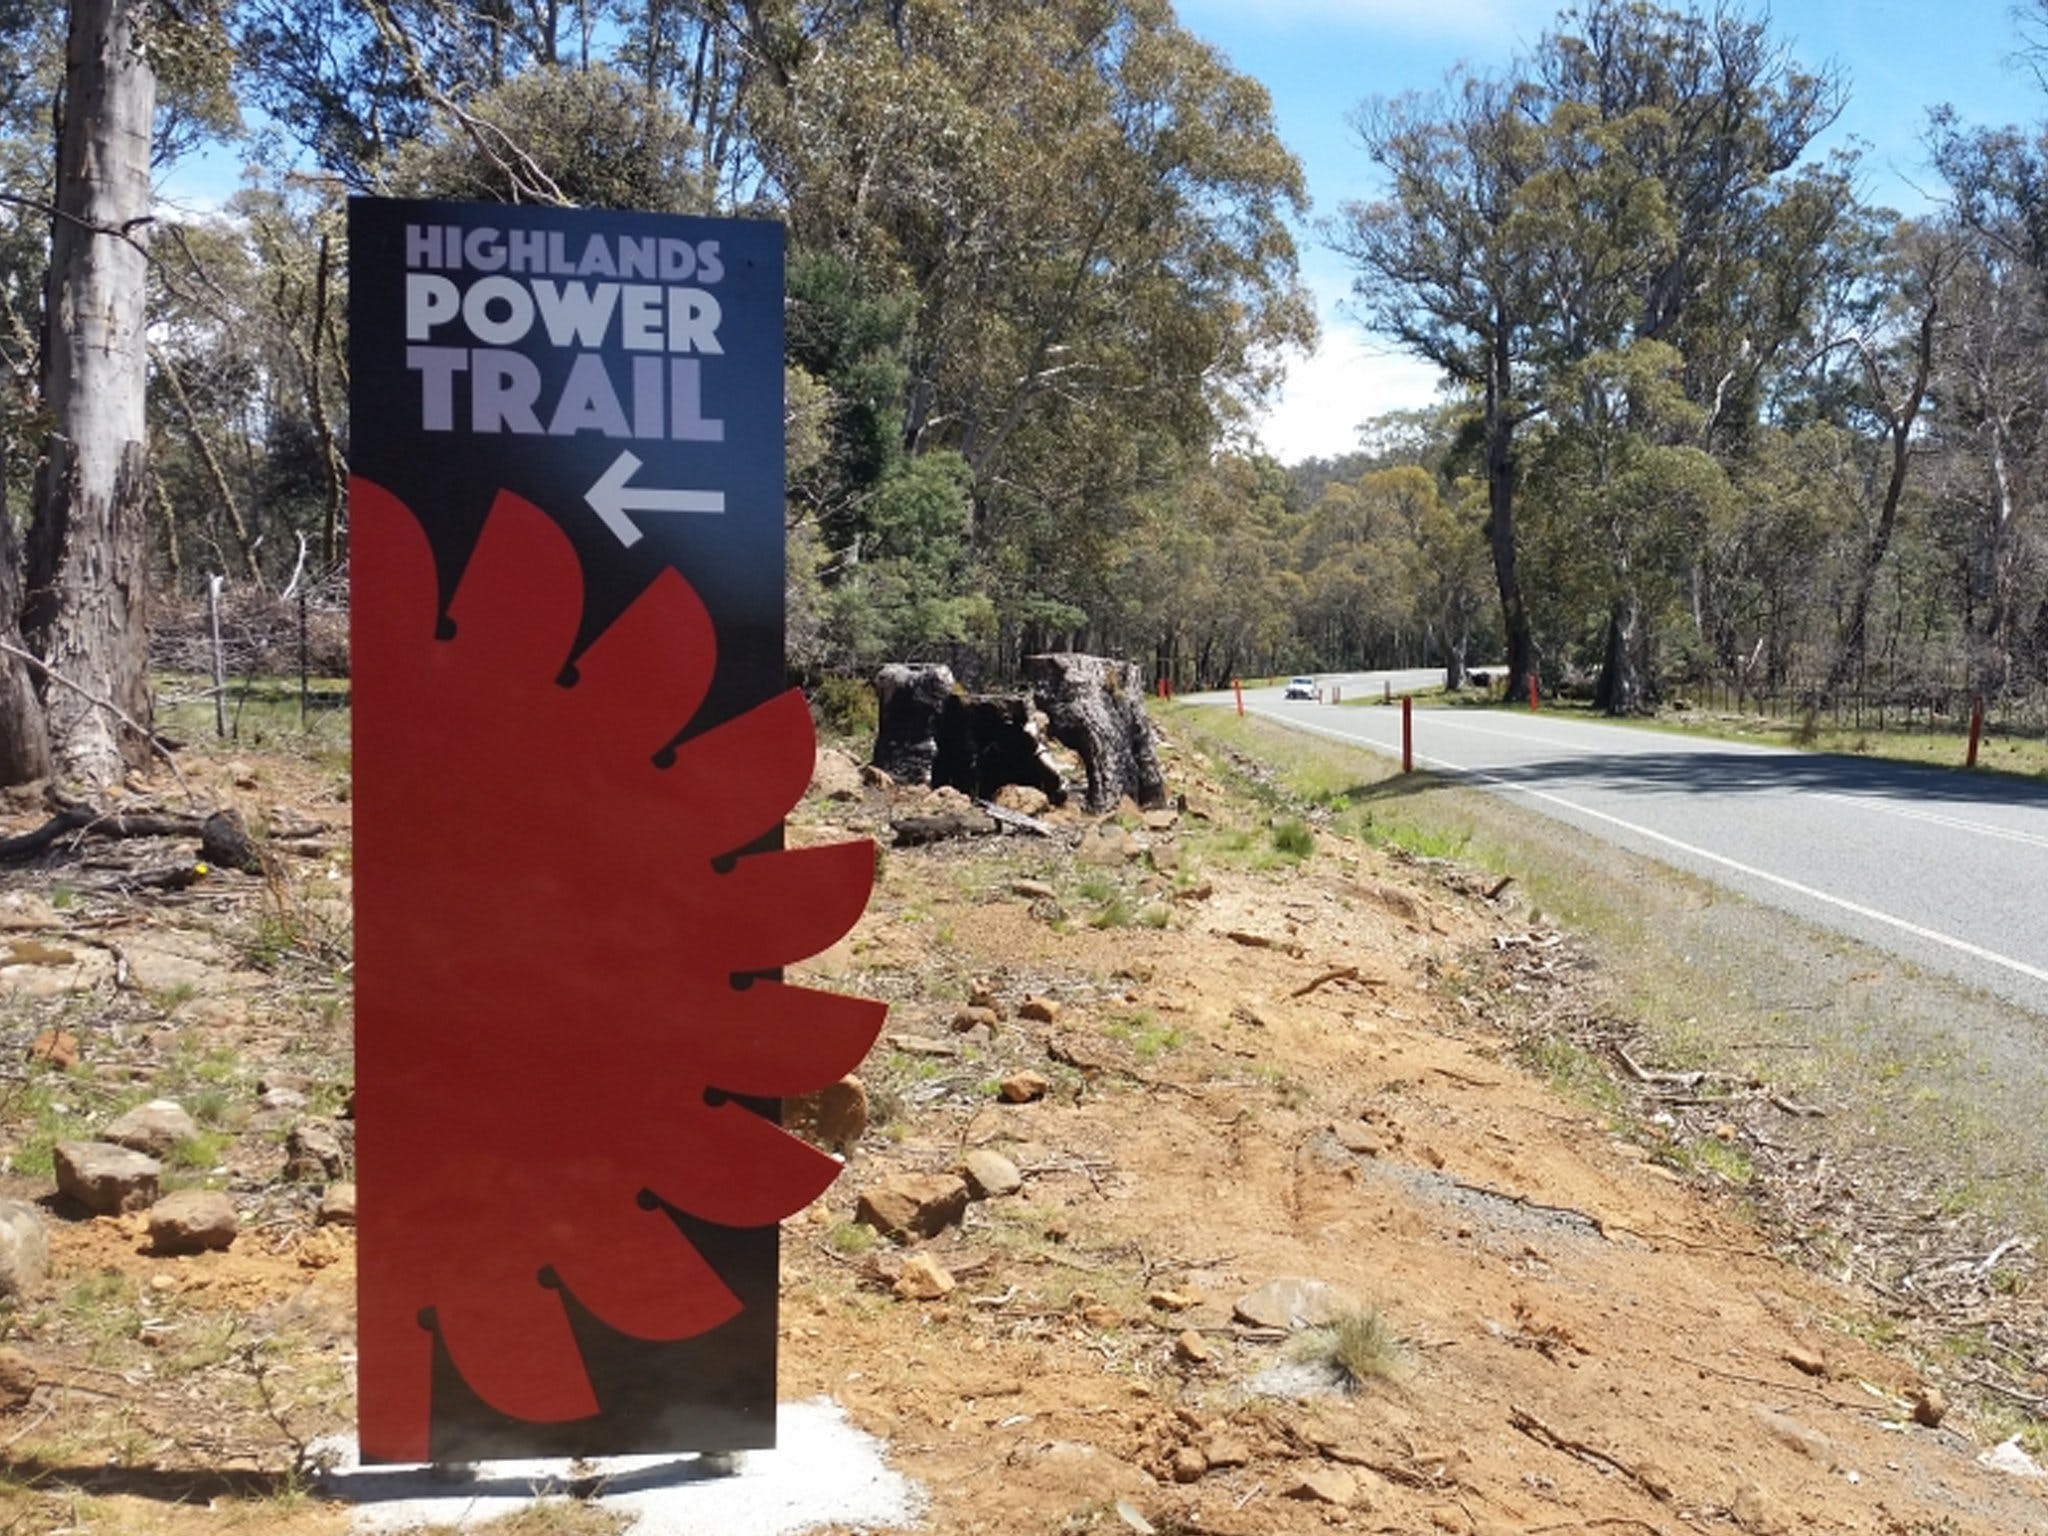 Highlands Power Trail - VIC Tourism